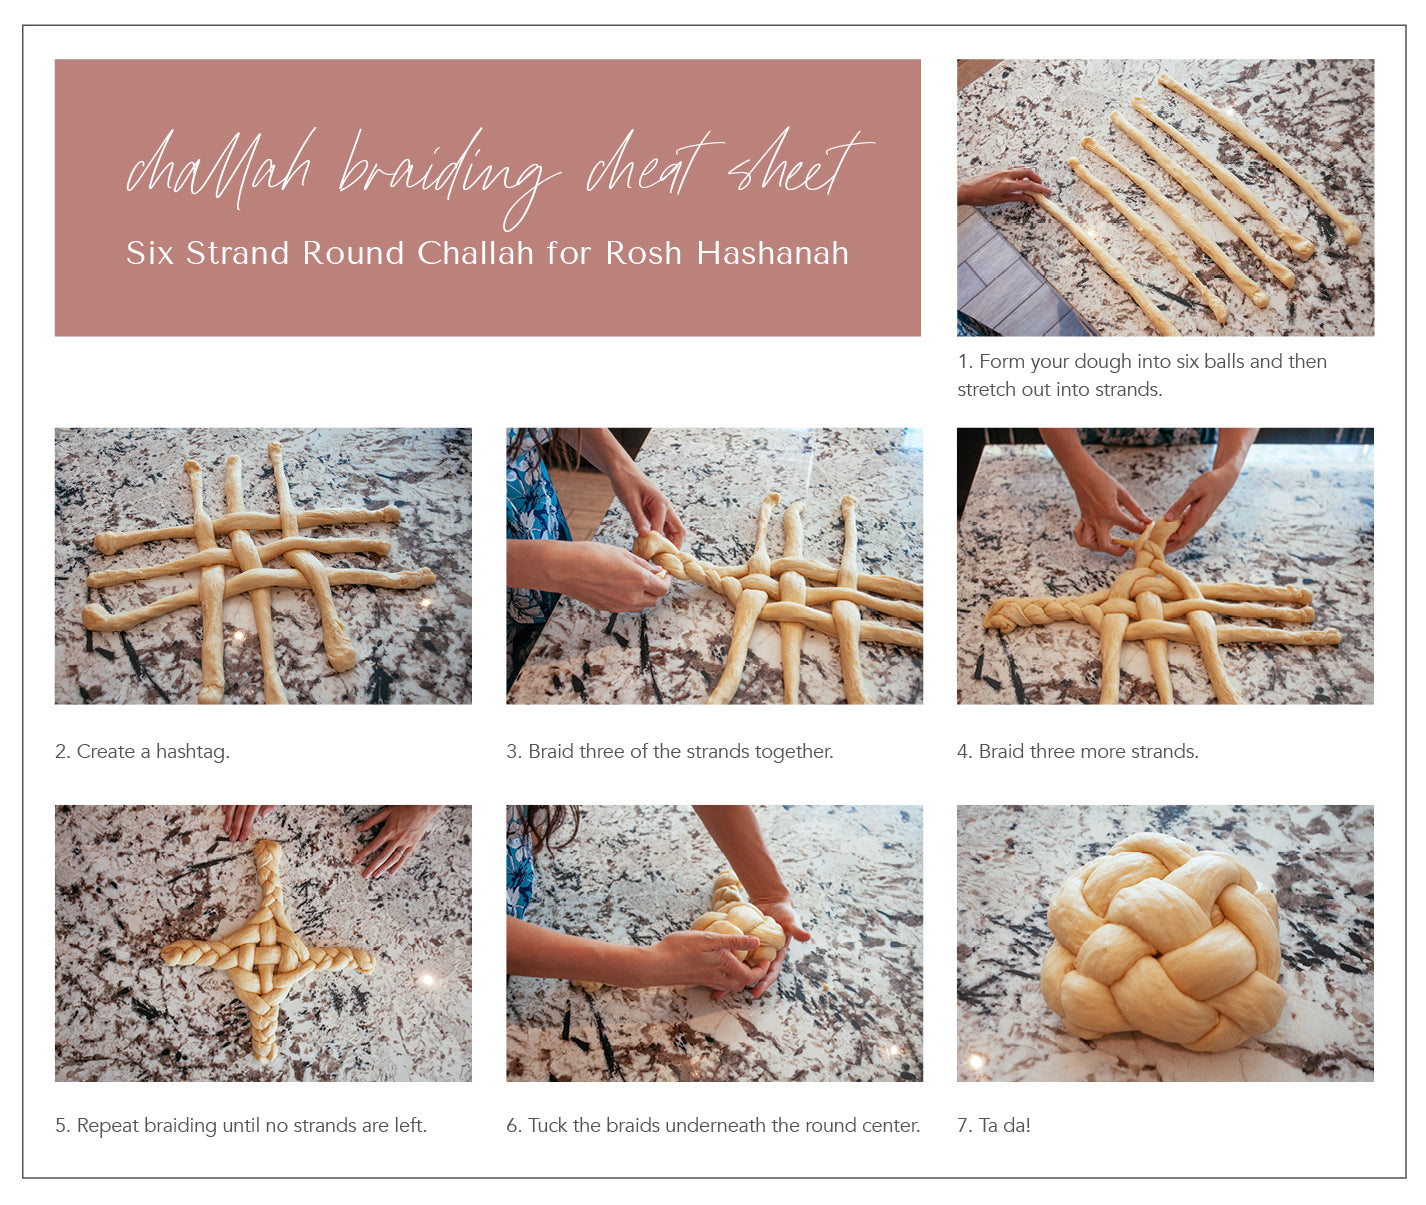 How to Braid a Round Challah